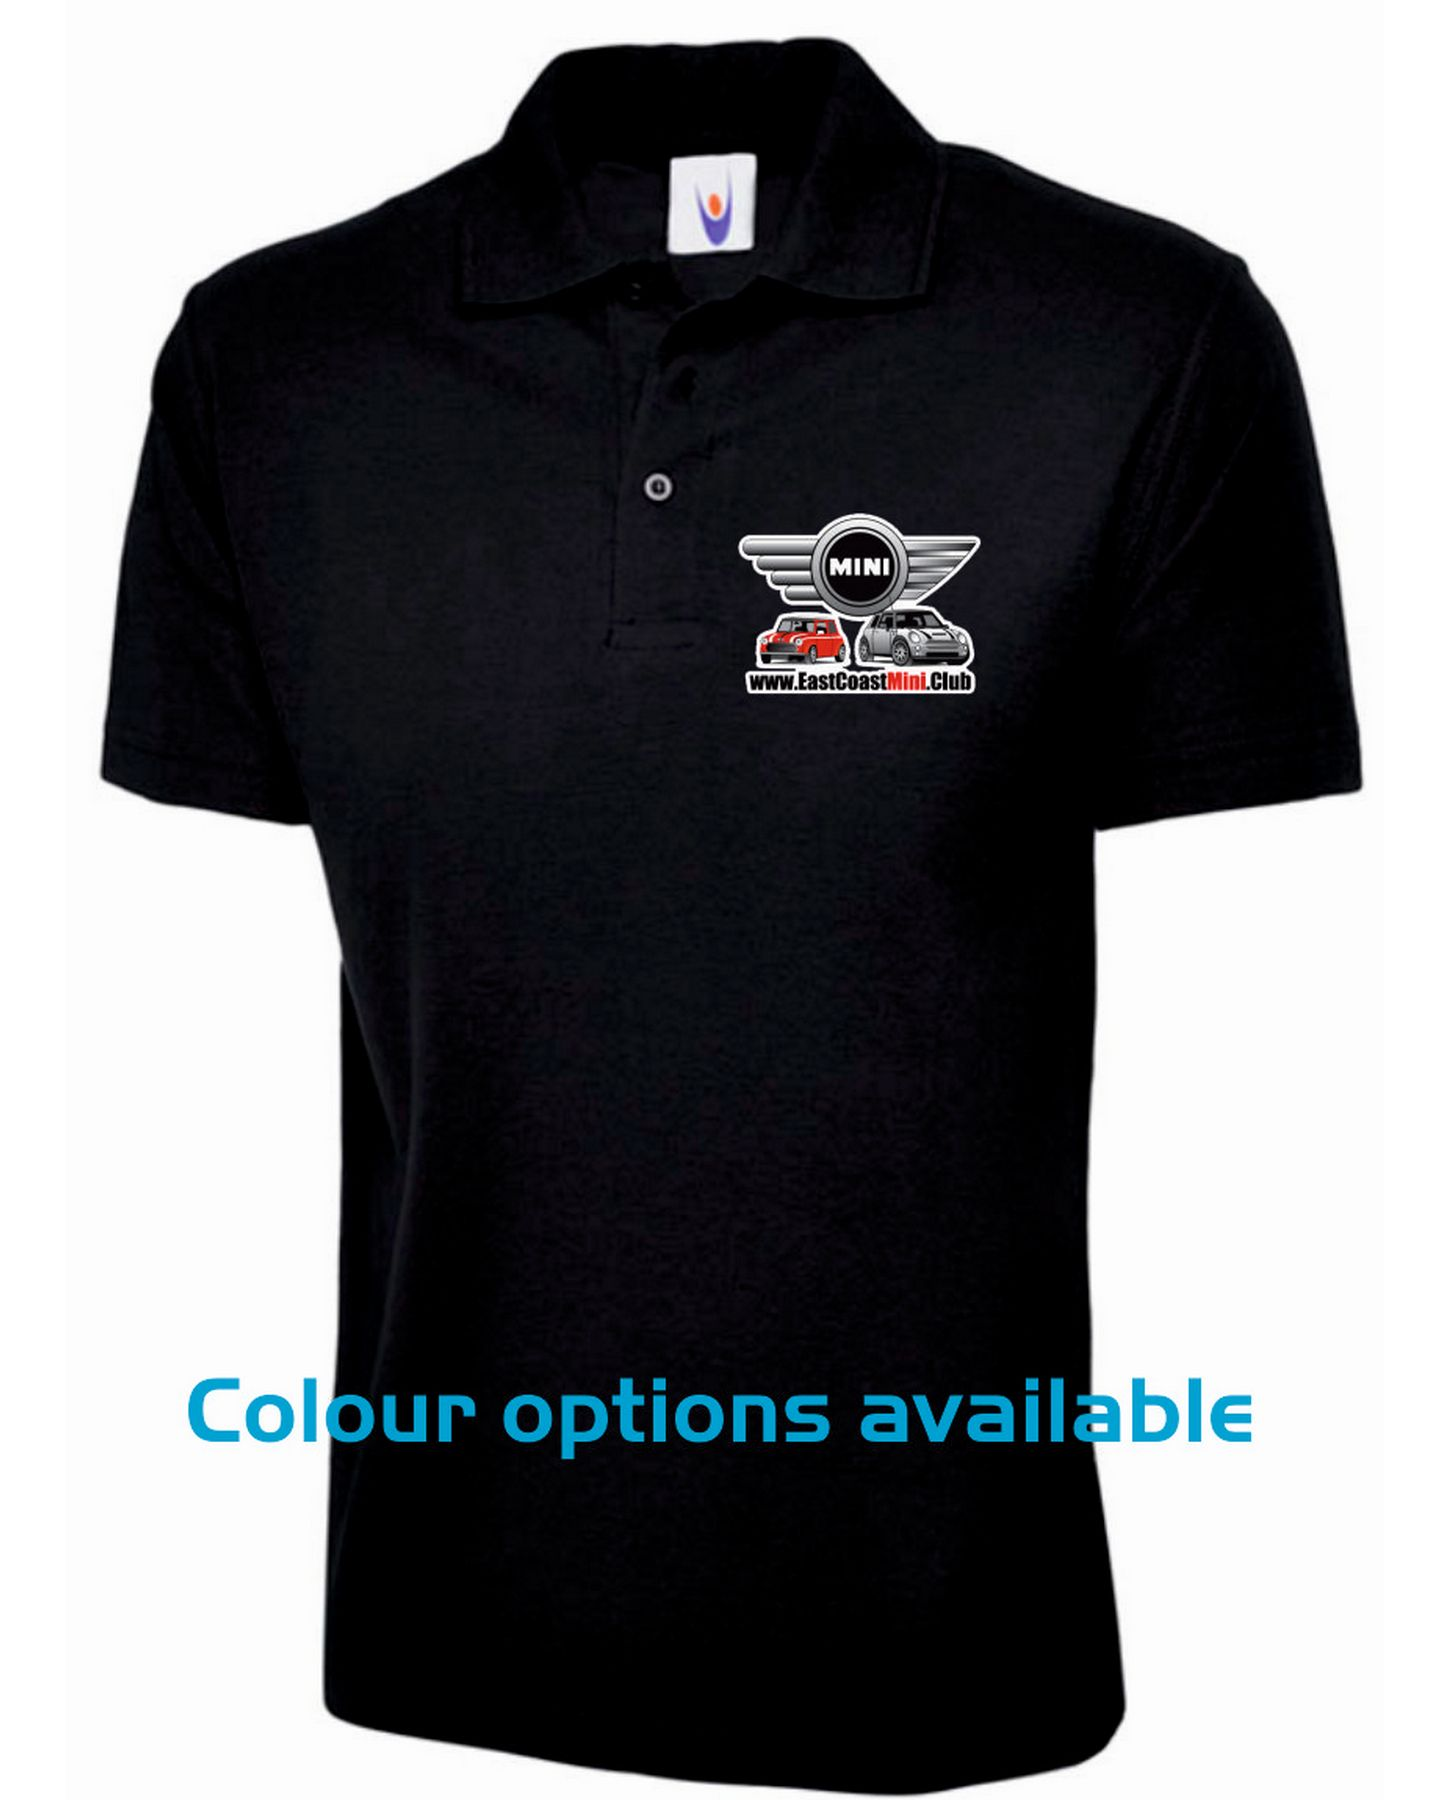 East Coast Mini Club – Polo Shirt (Unisex)